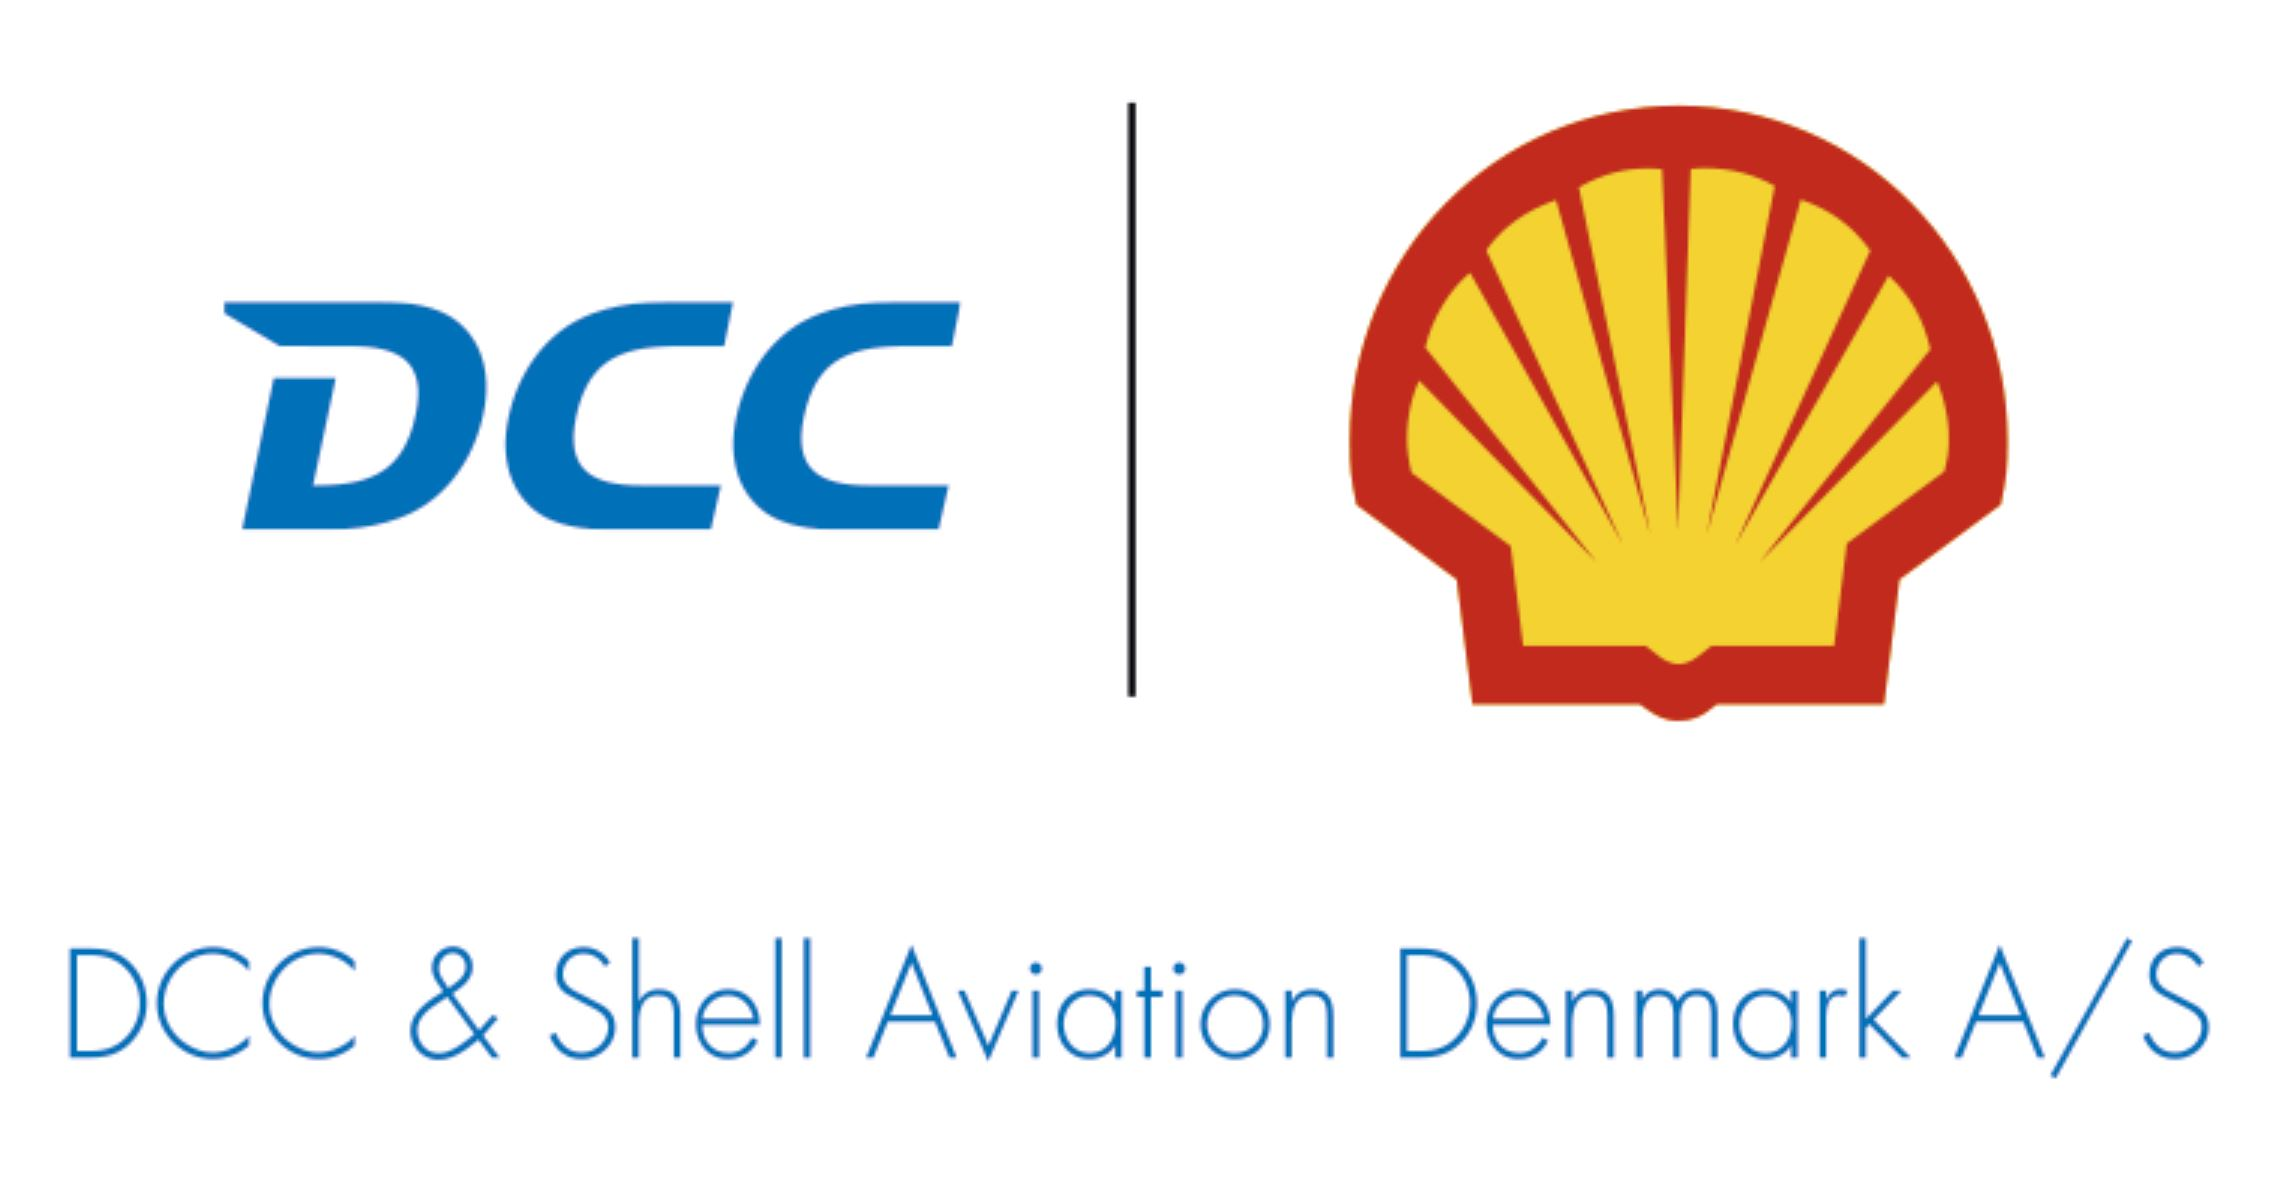 DCC & Shell Aviation Denmark A/S